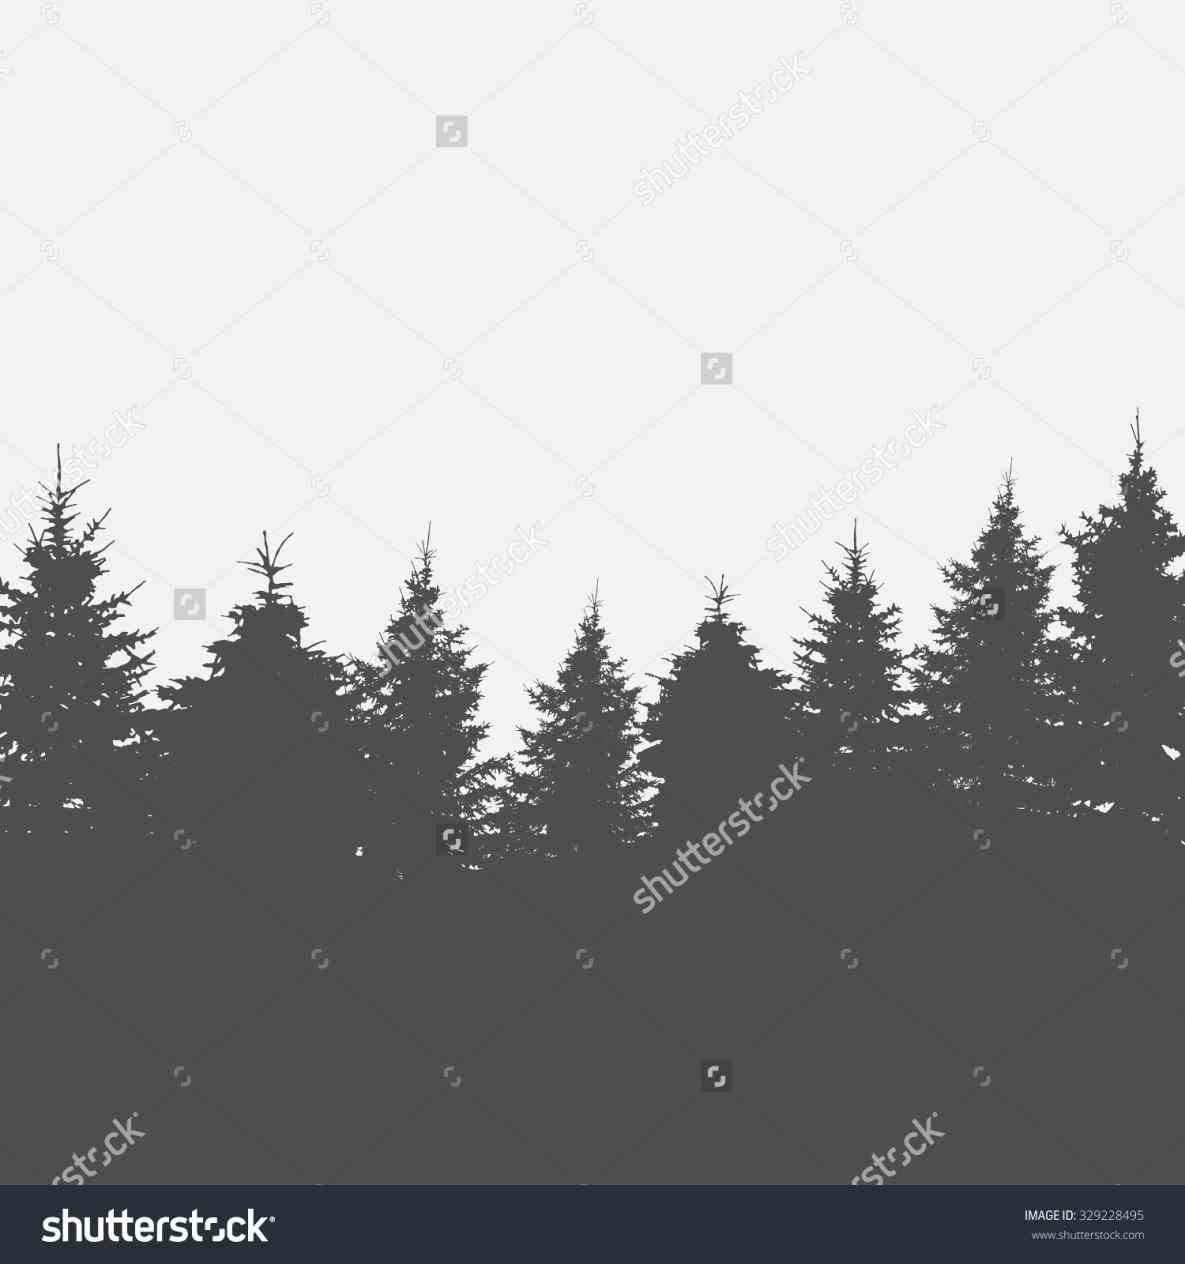 woods silhouette vector.